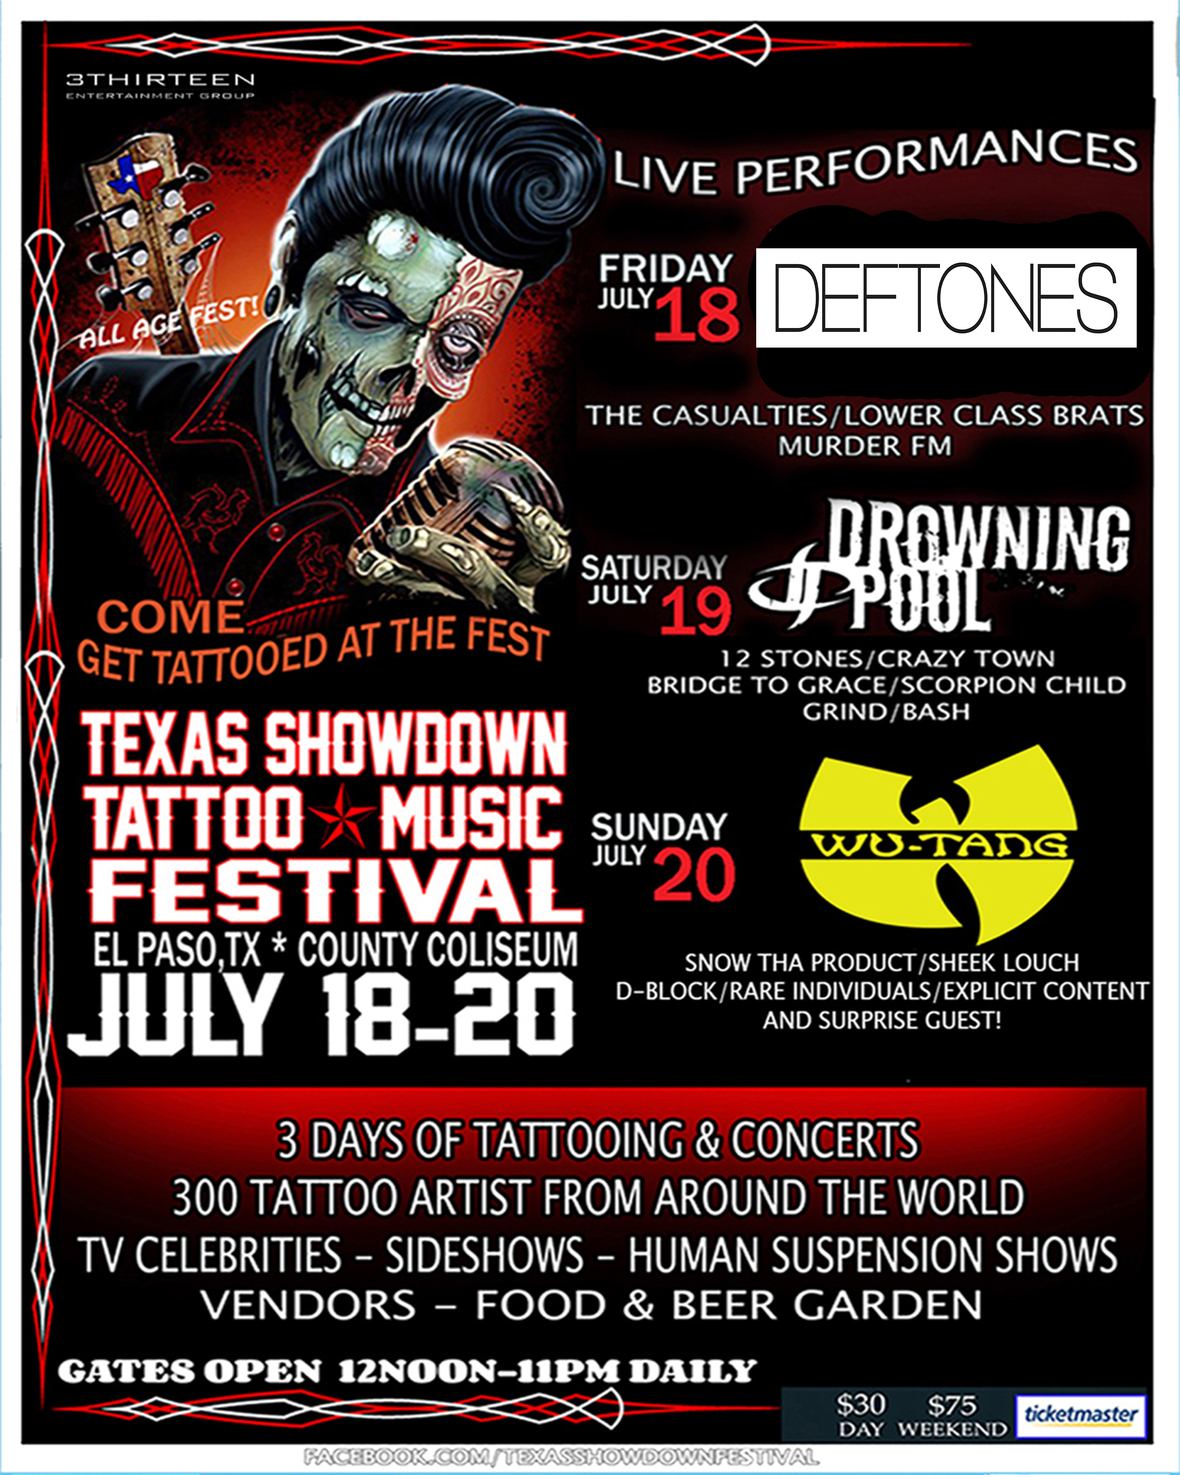 TEXAS SHOWDOWN TATTOO & MUSIC FESTIVAL ANOUNCES 5TH ANNUAL HEADLINERS